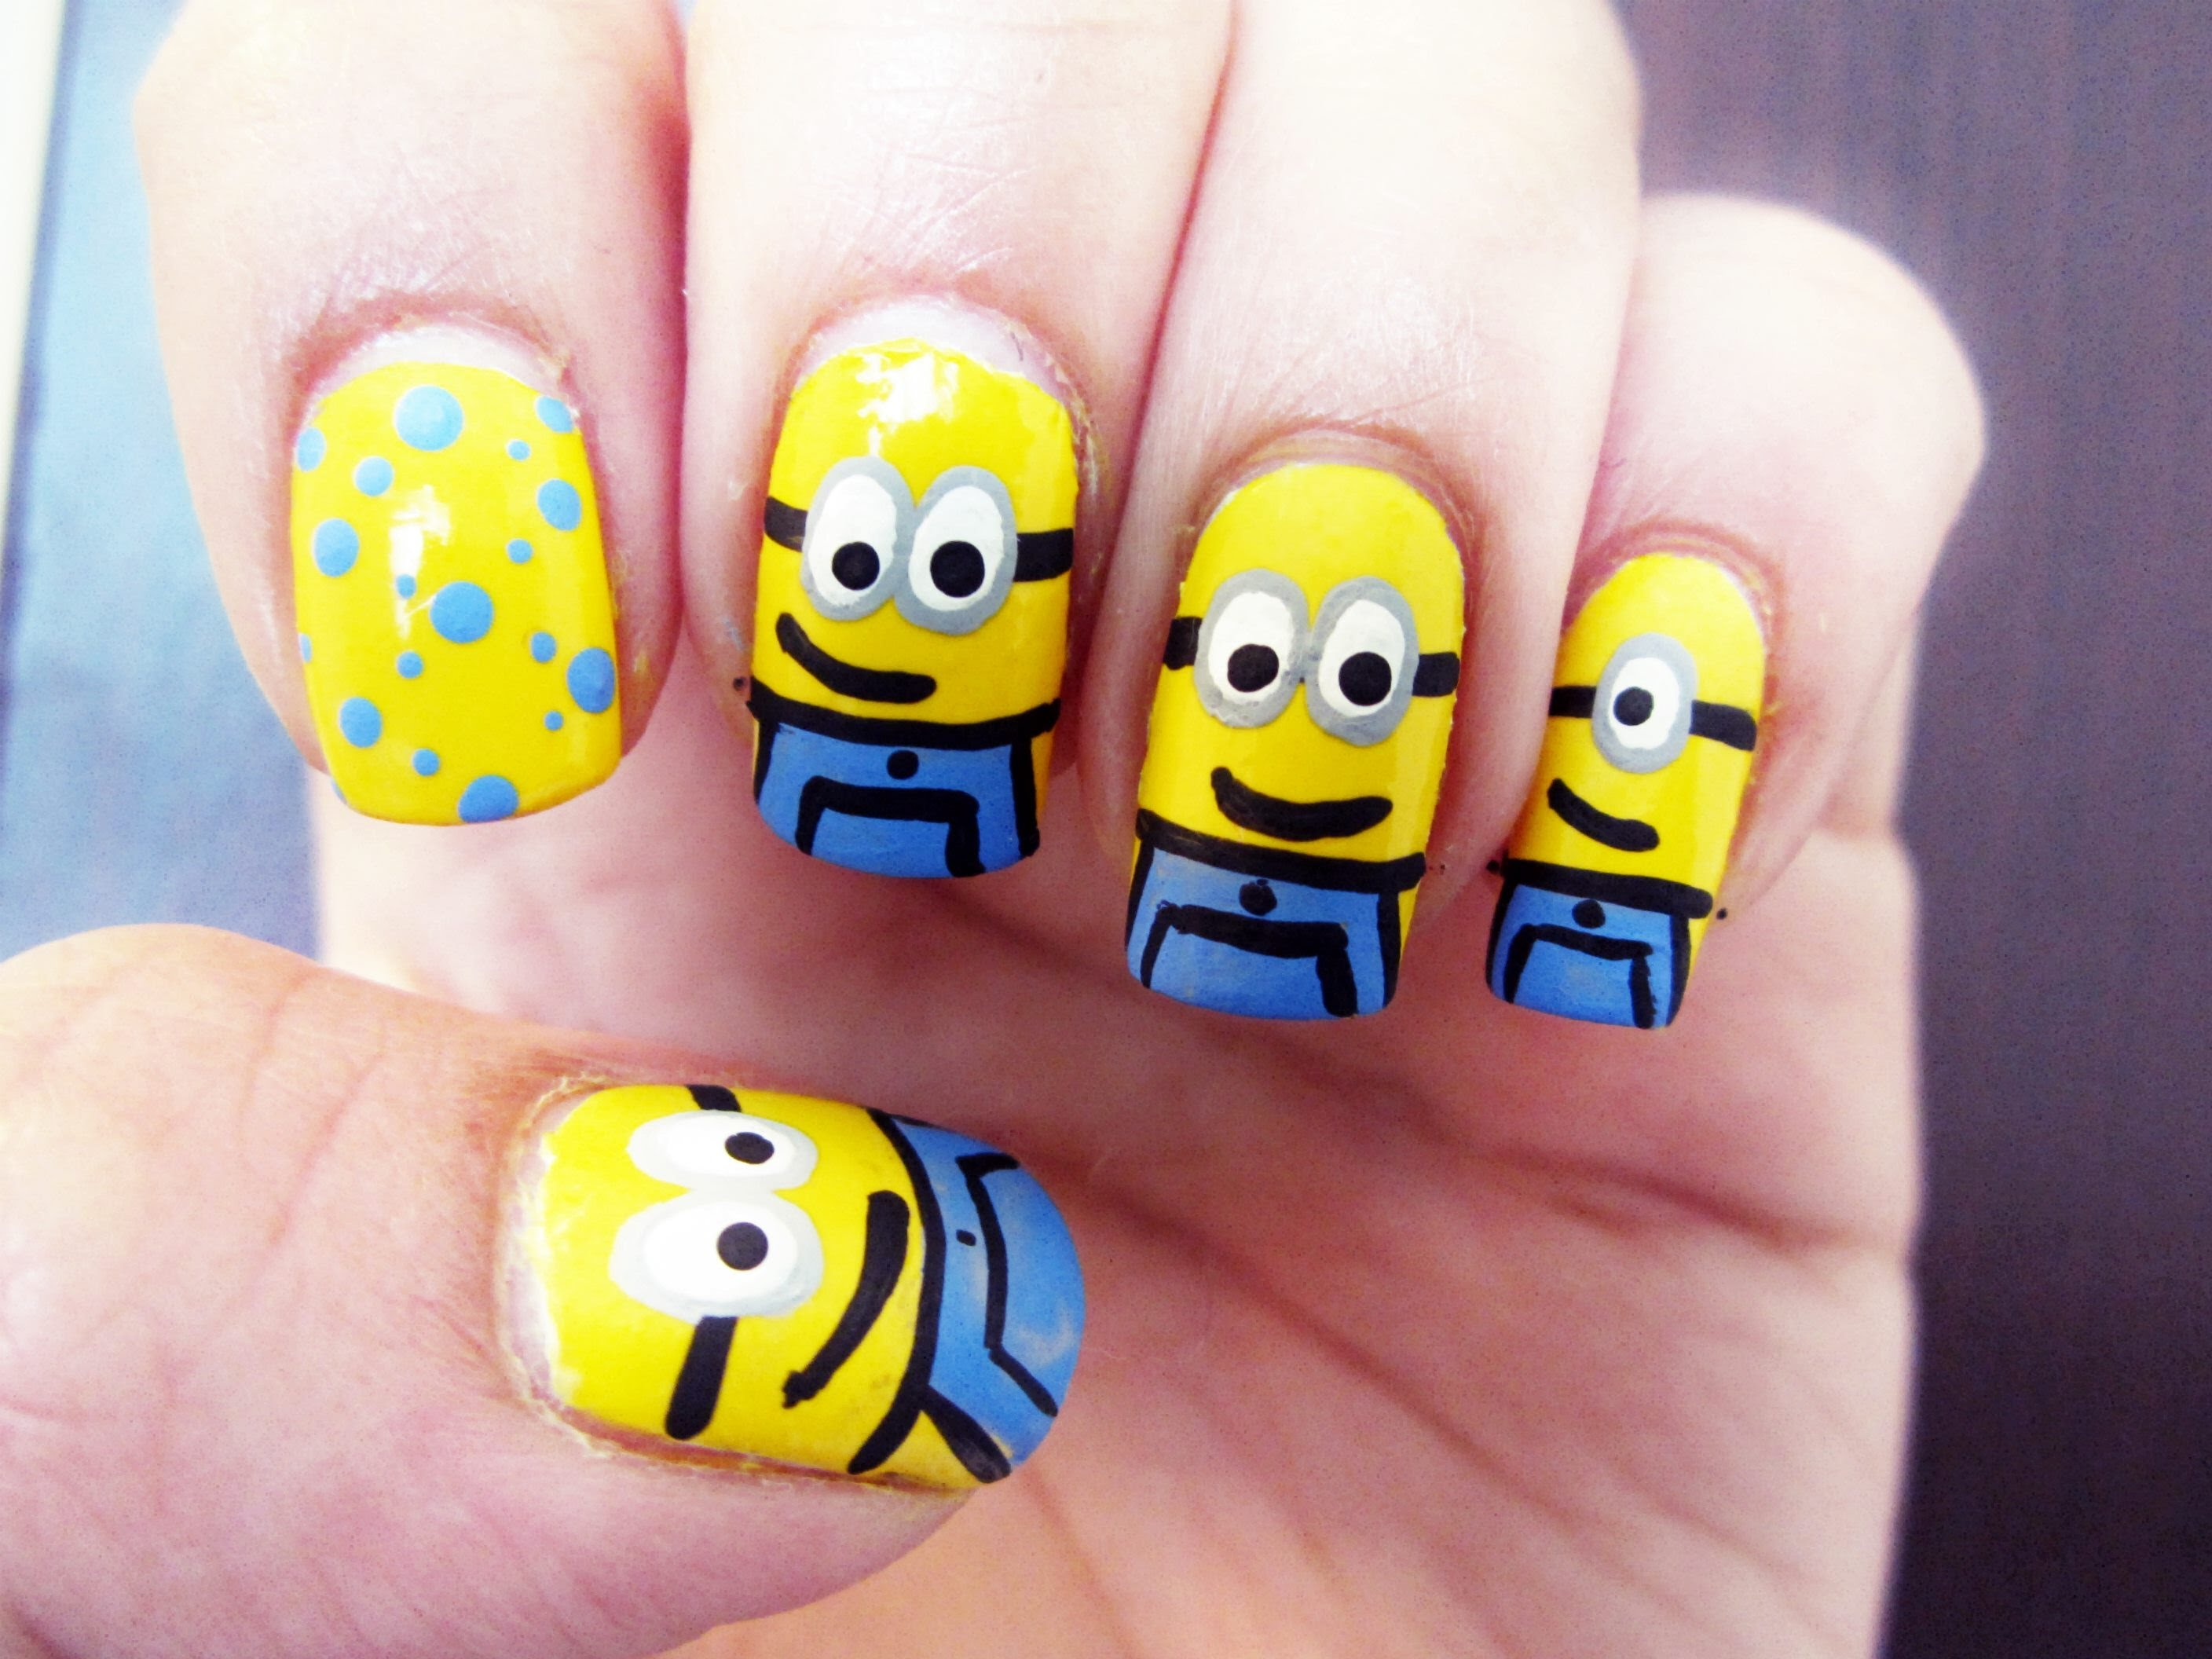 How to make adorable Minions on your nails | 1mhowto.com